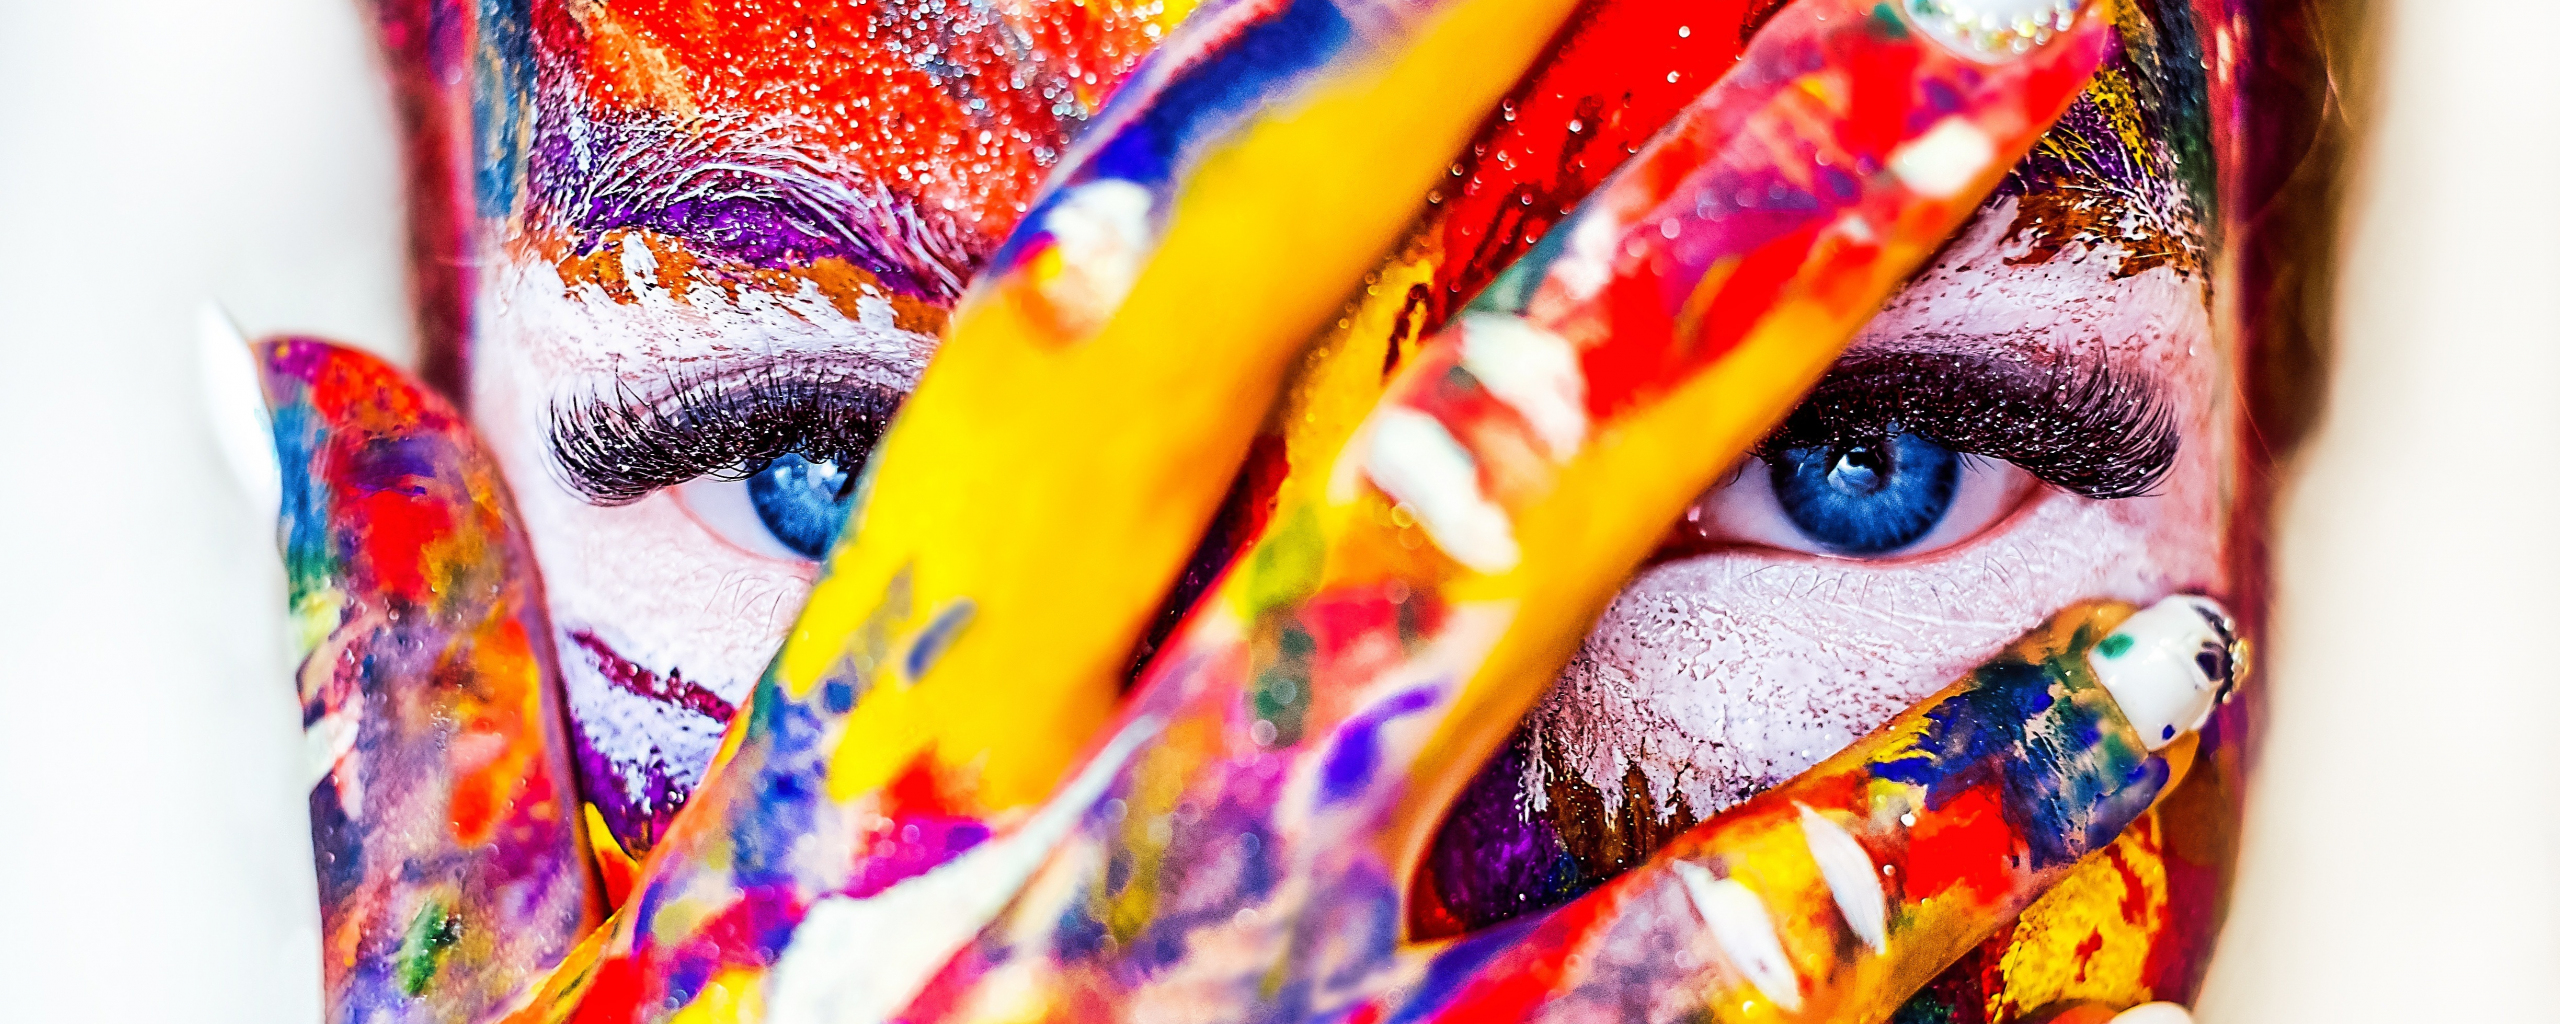 Paint on face and hand, colorful, close up, 2560x1024 wallpaper